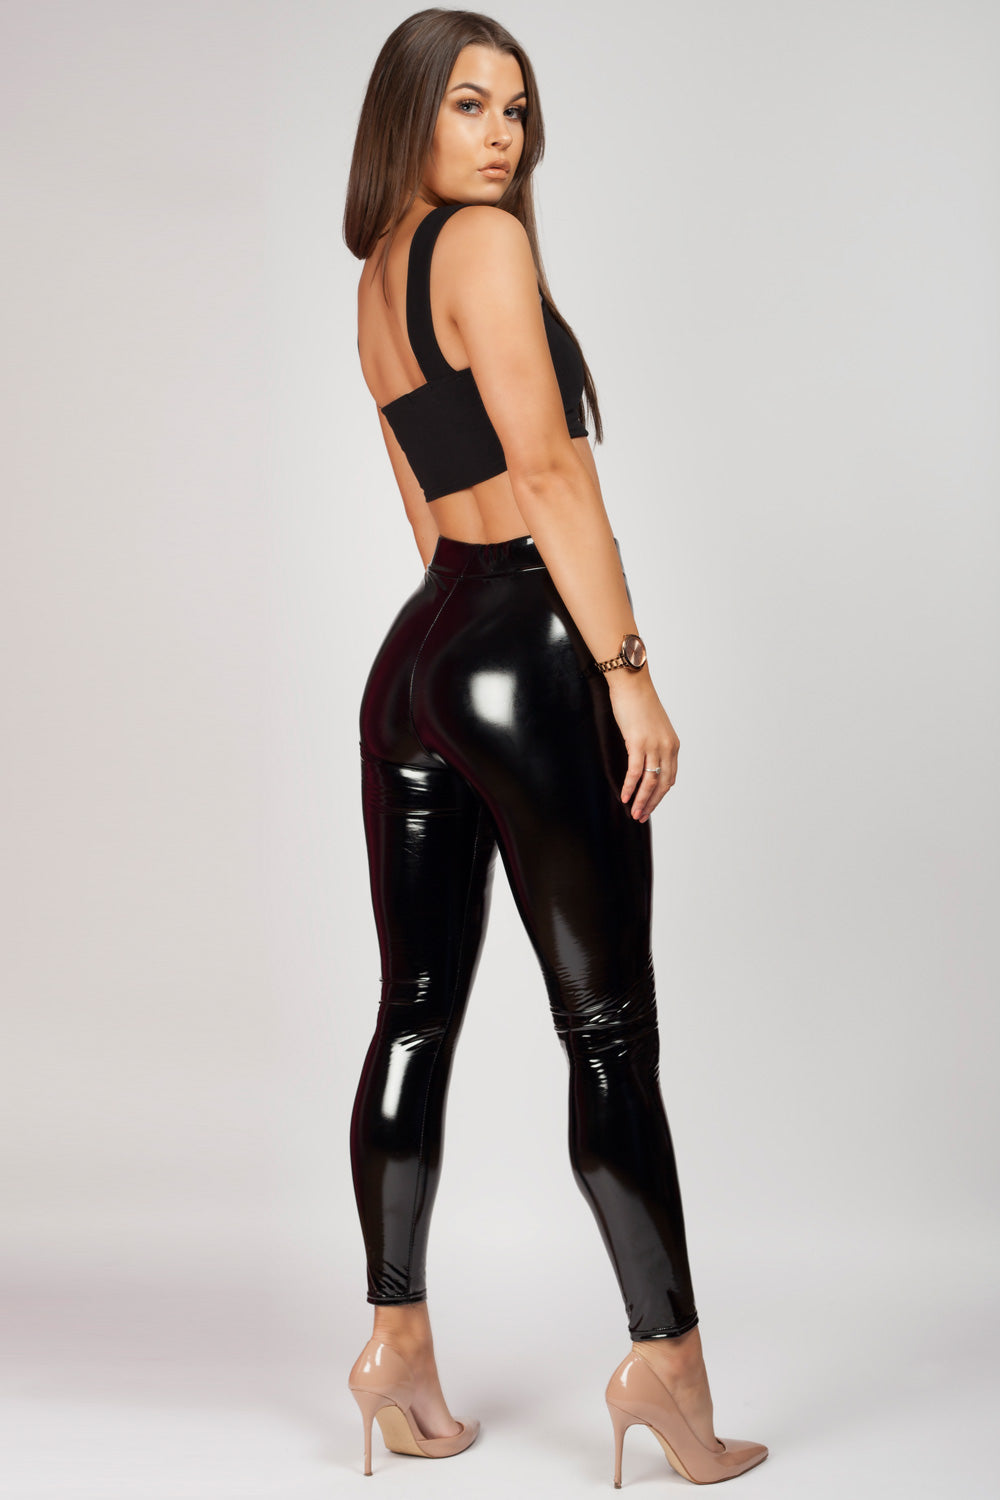 Black Vinyl Leggings High Waisted